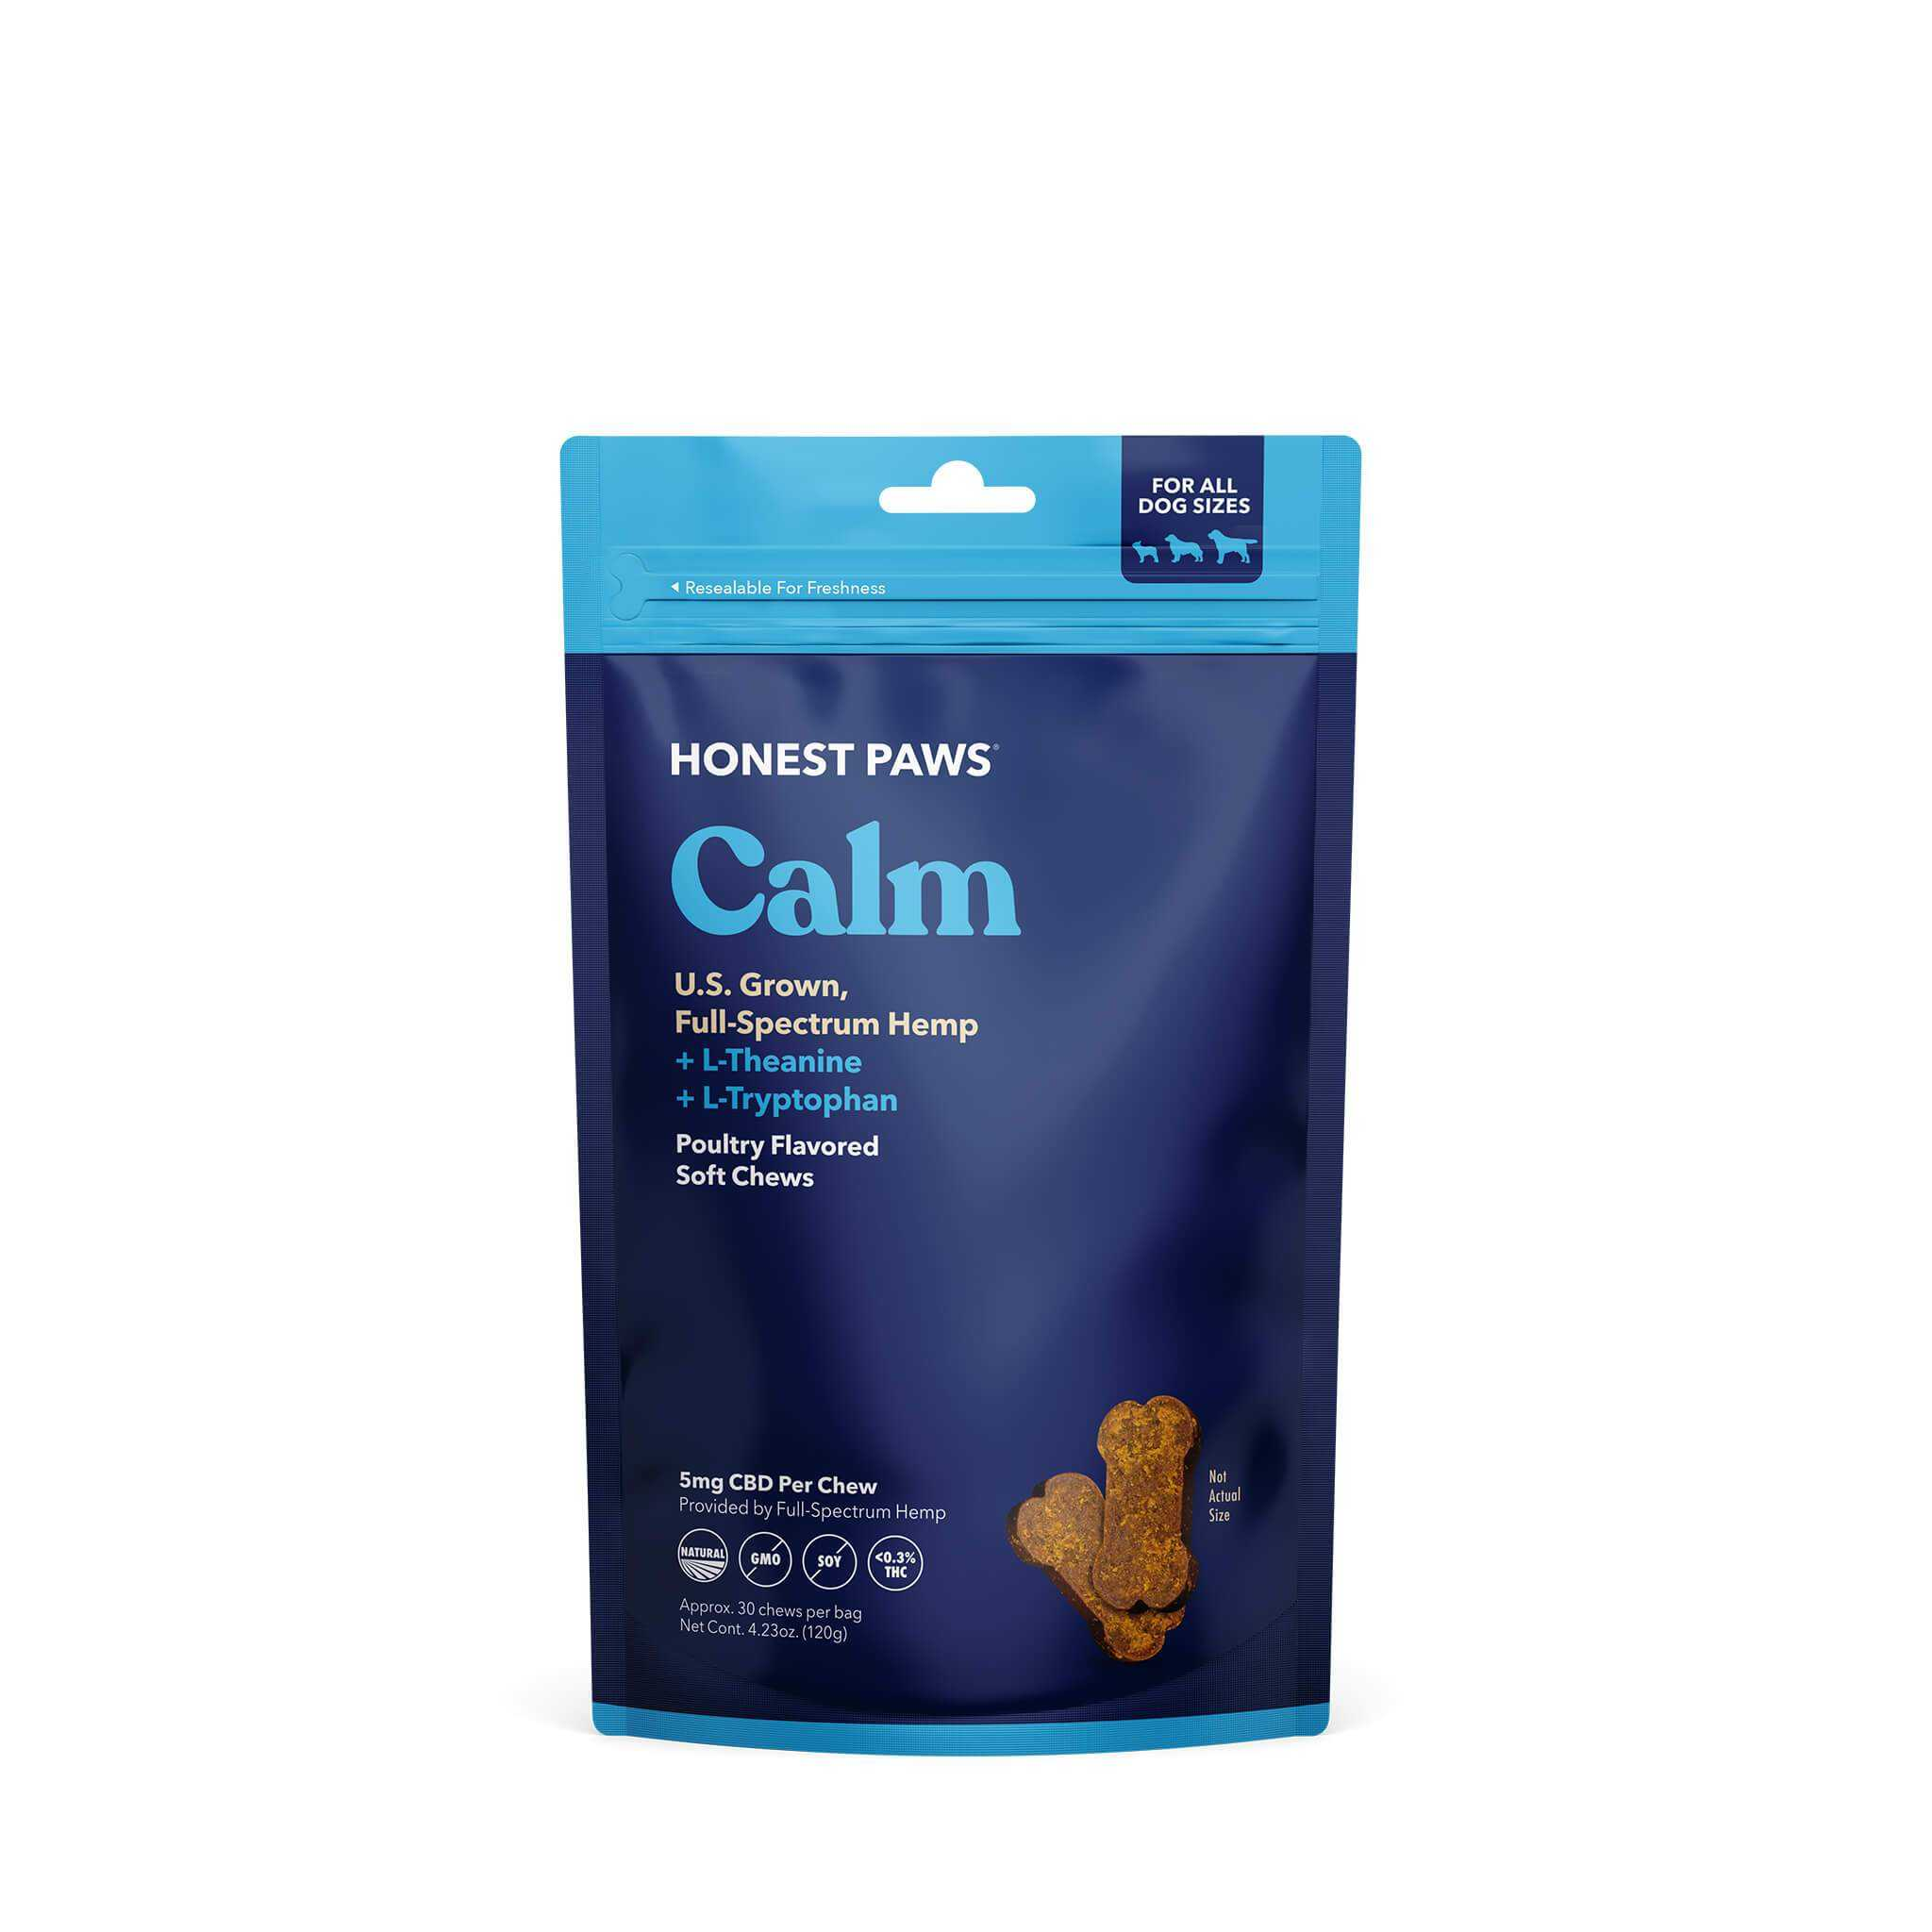 Honest Paws Chews | Calm Blend - Full Spectrum